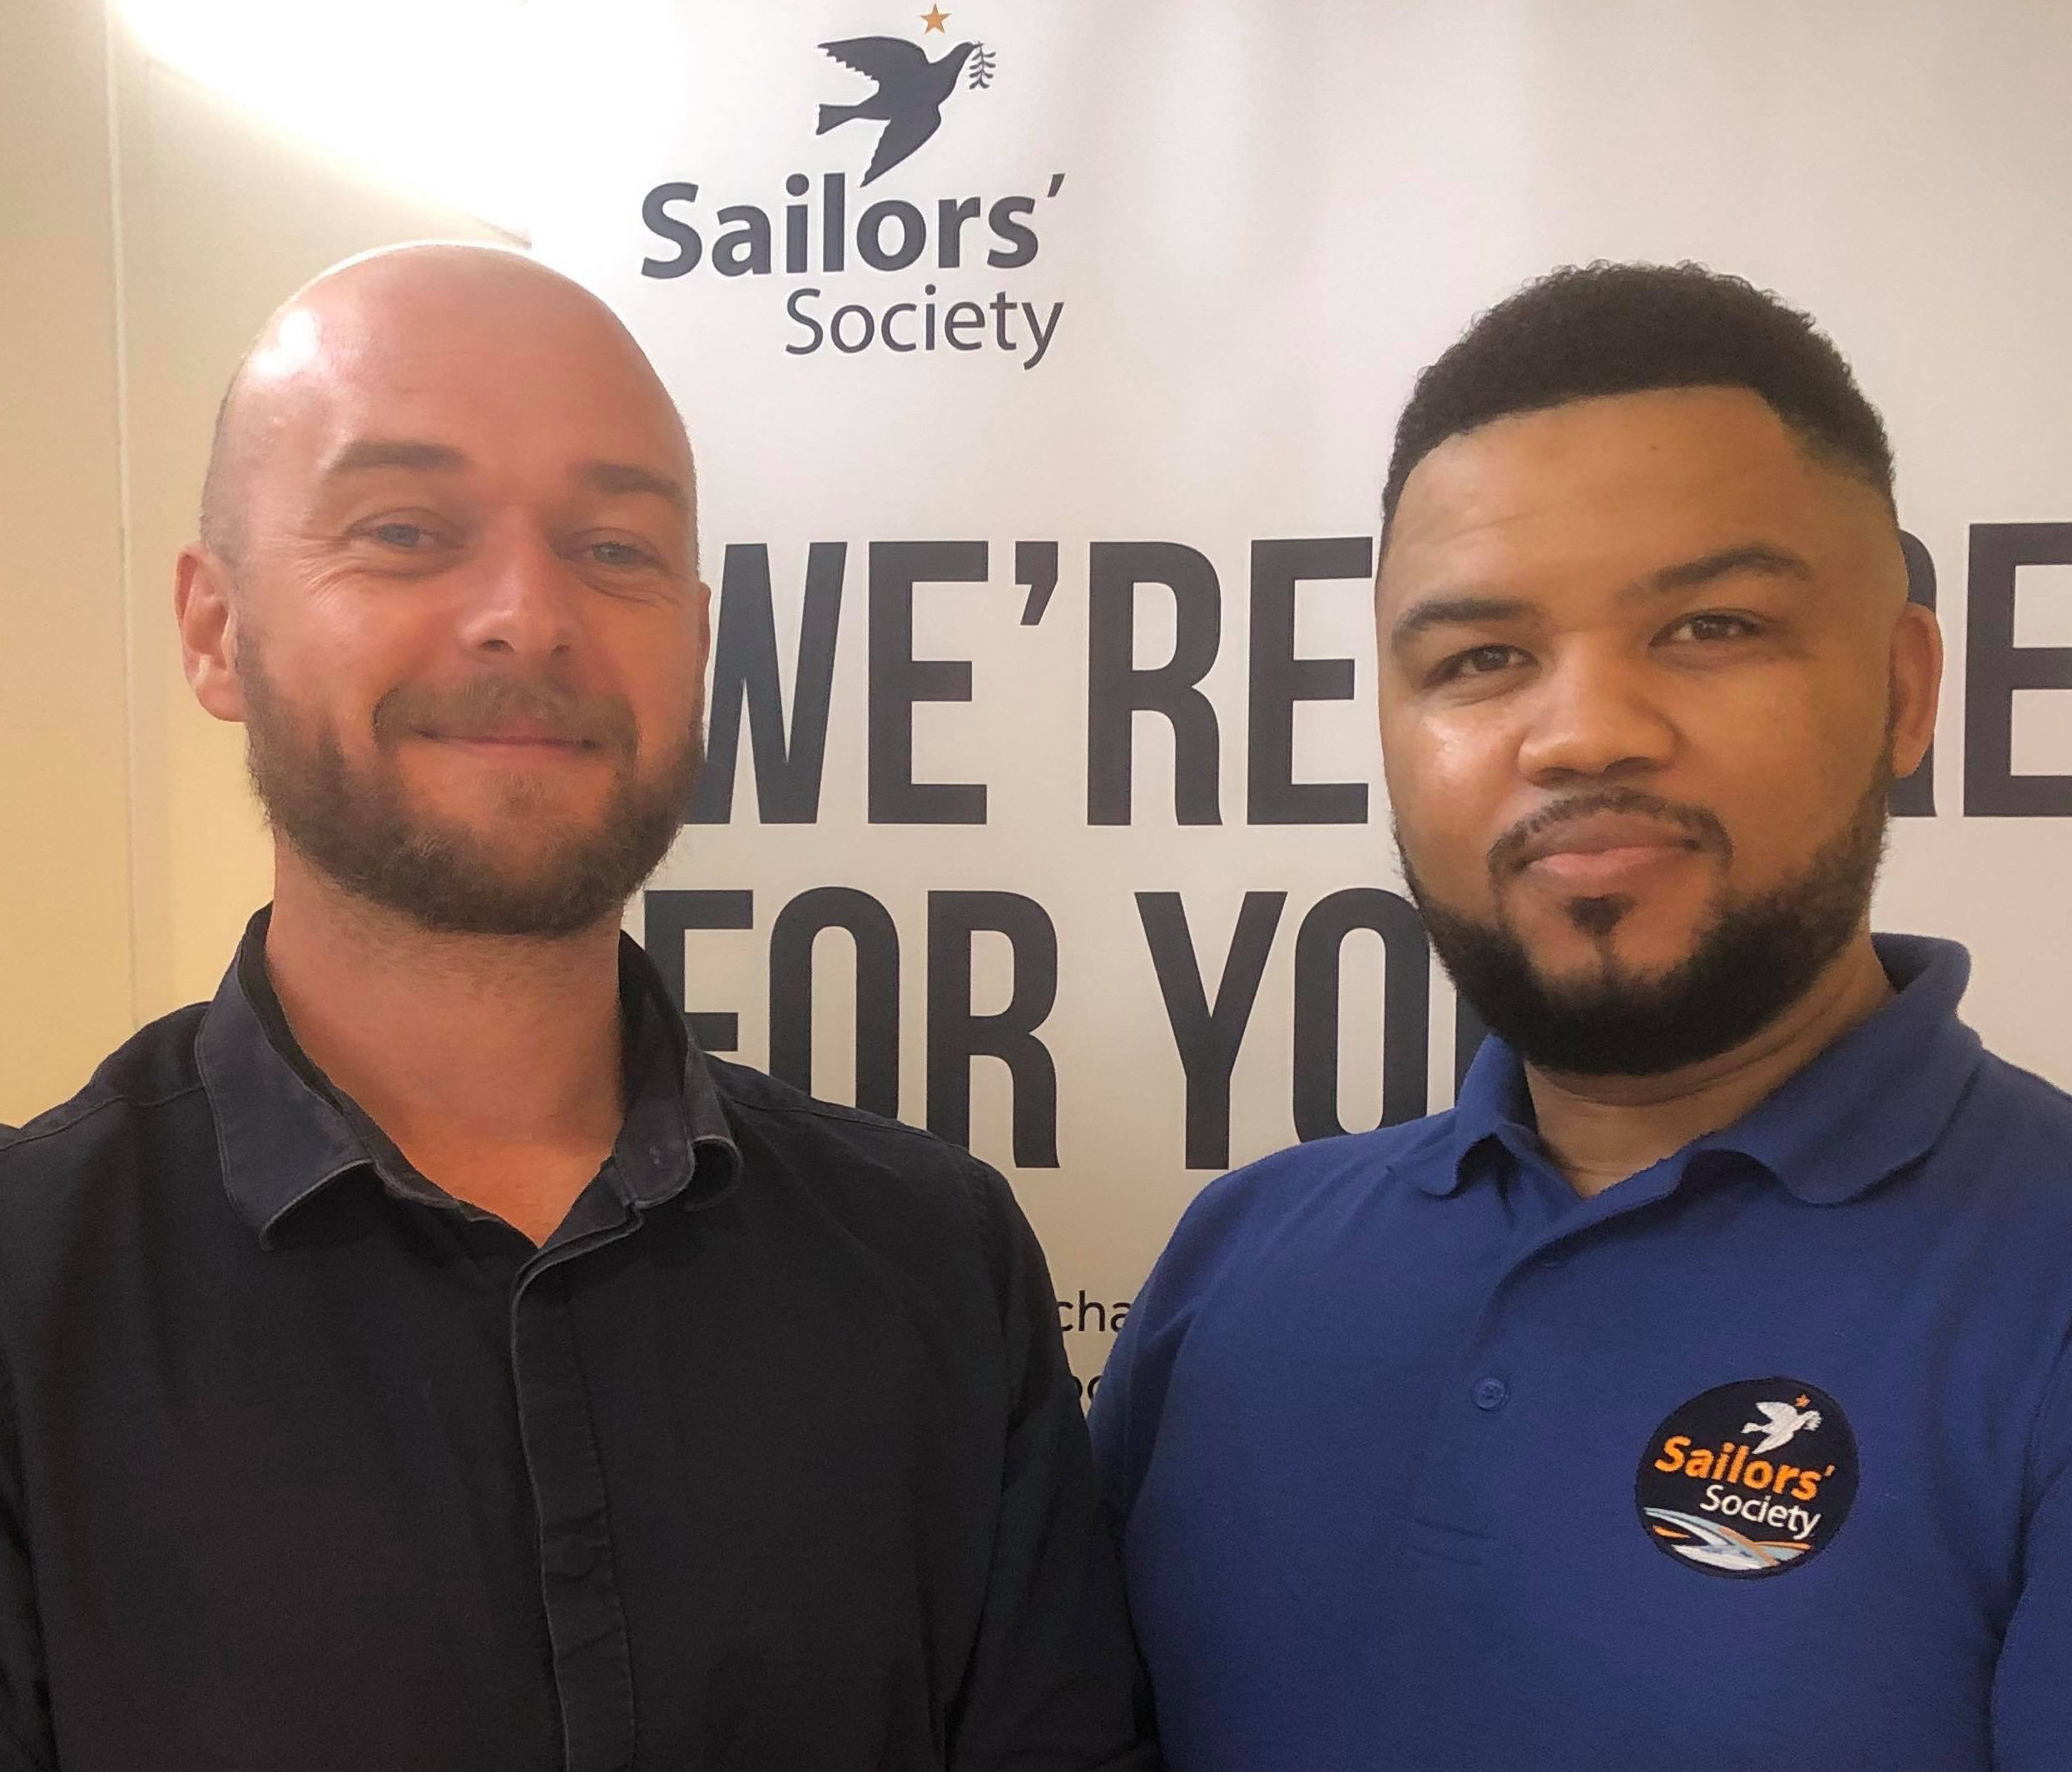 Two Simons welcome seafarers to Southampton